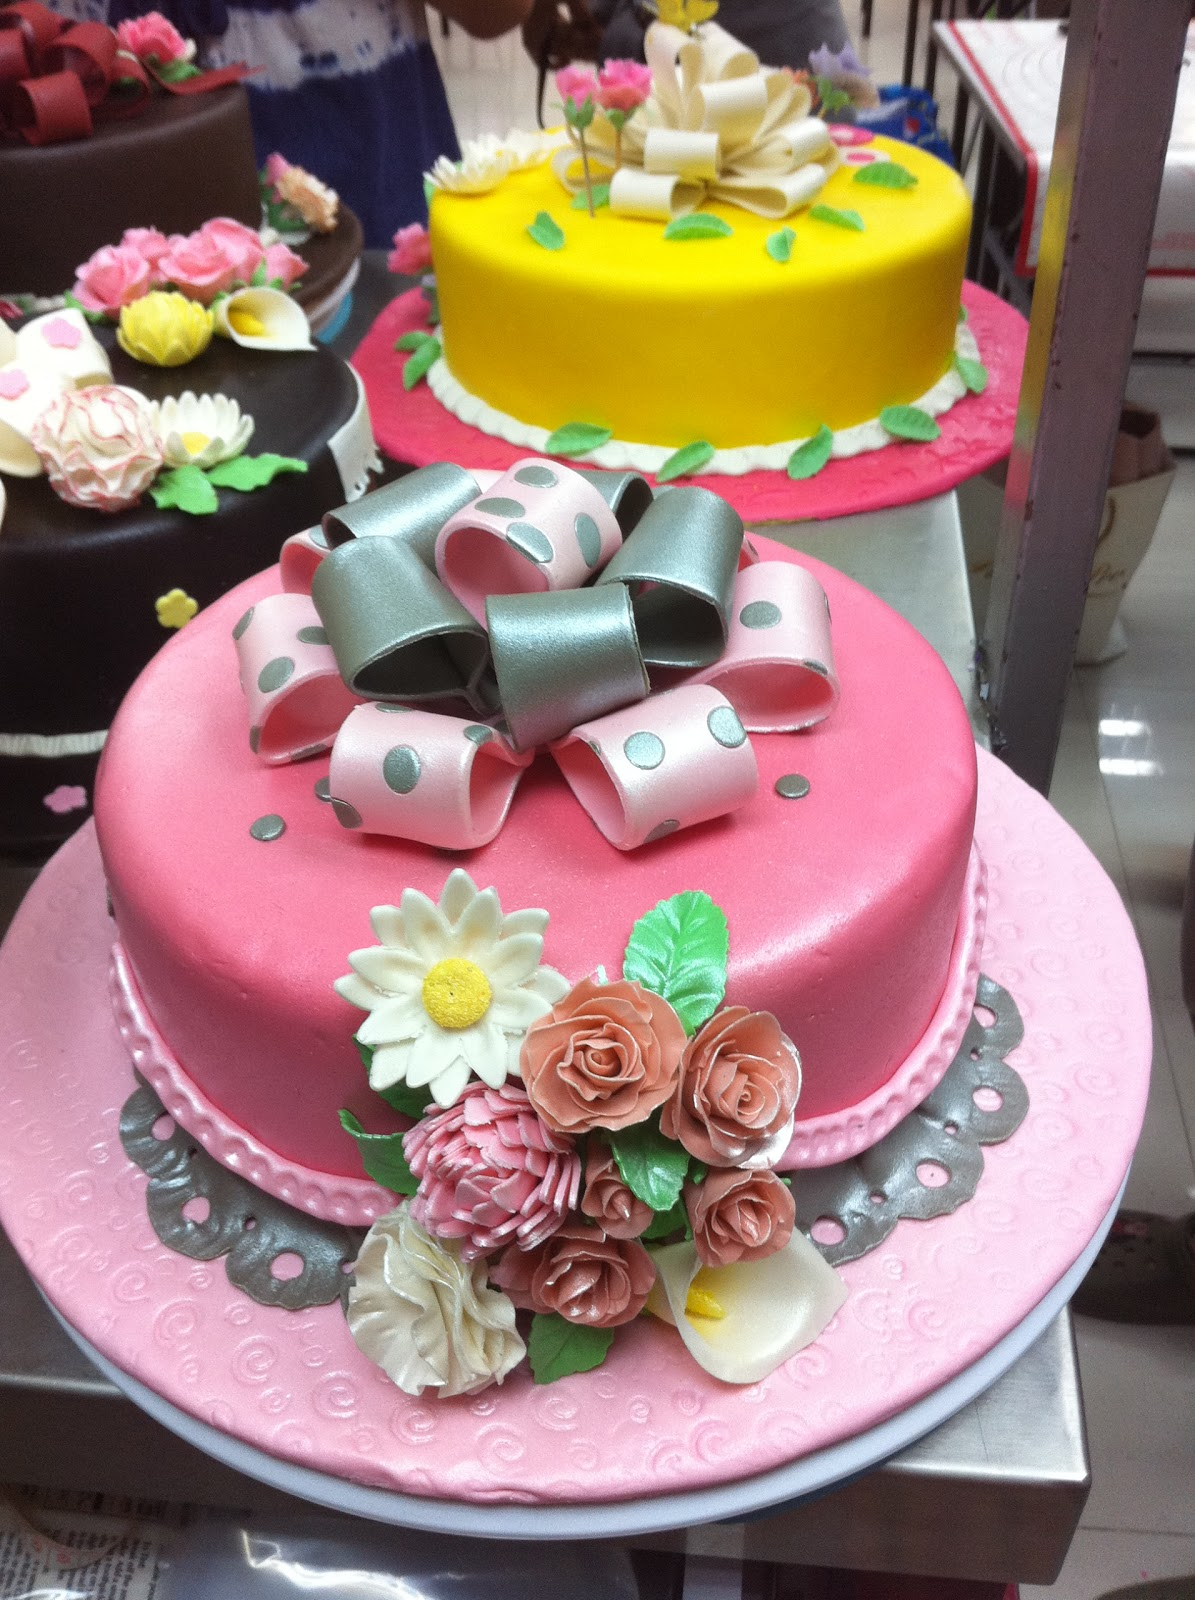 Wilton Cake Classes Uk